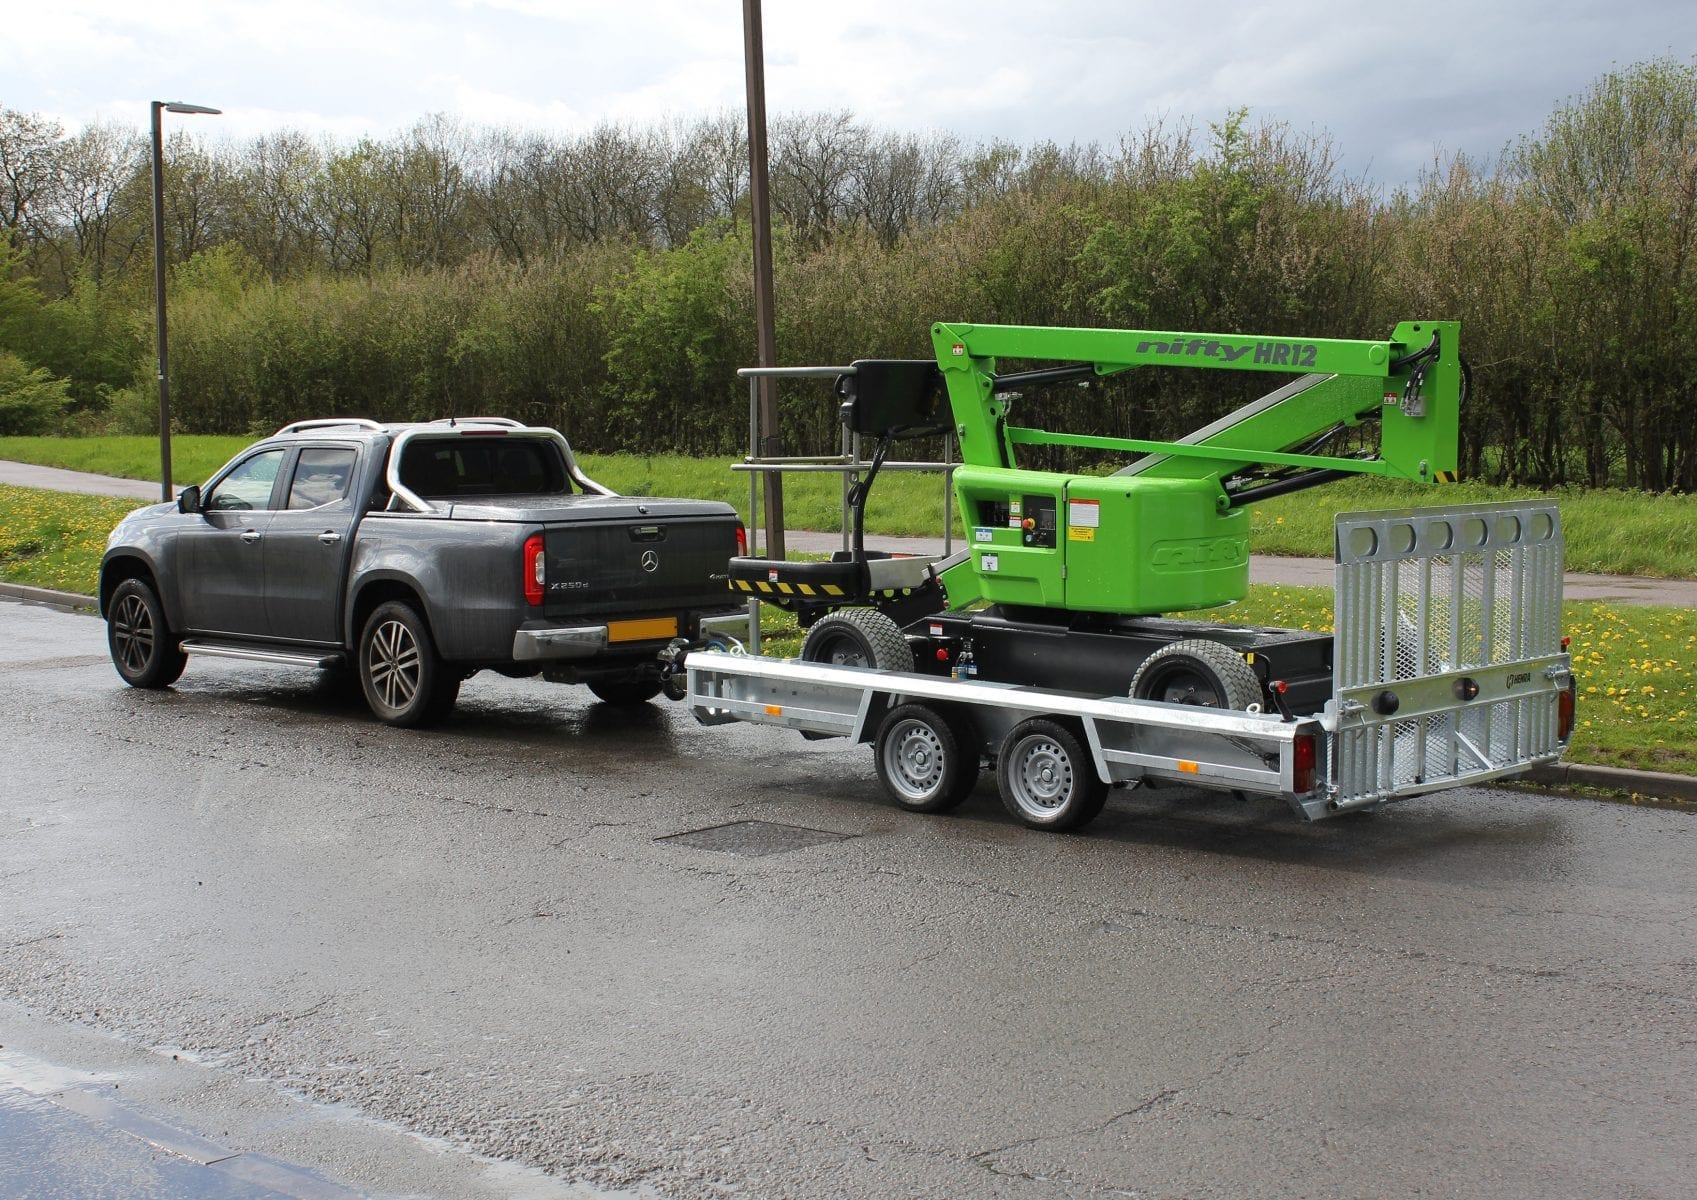 HR12L on Trailer with Vehicle